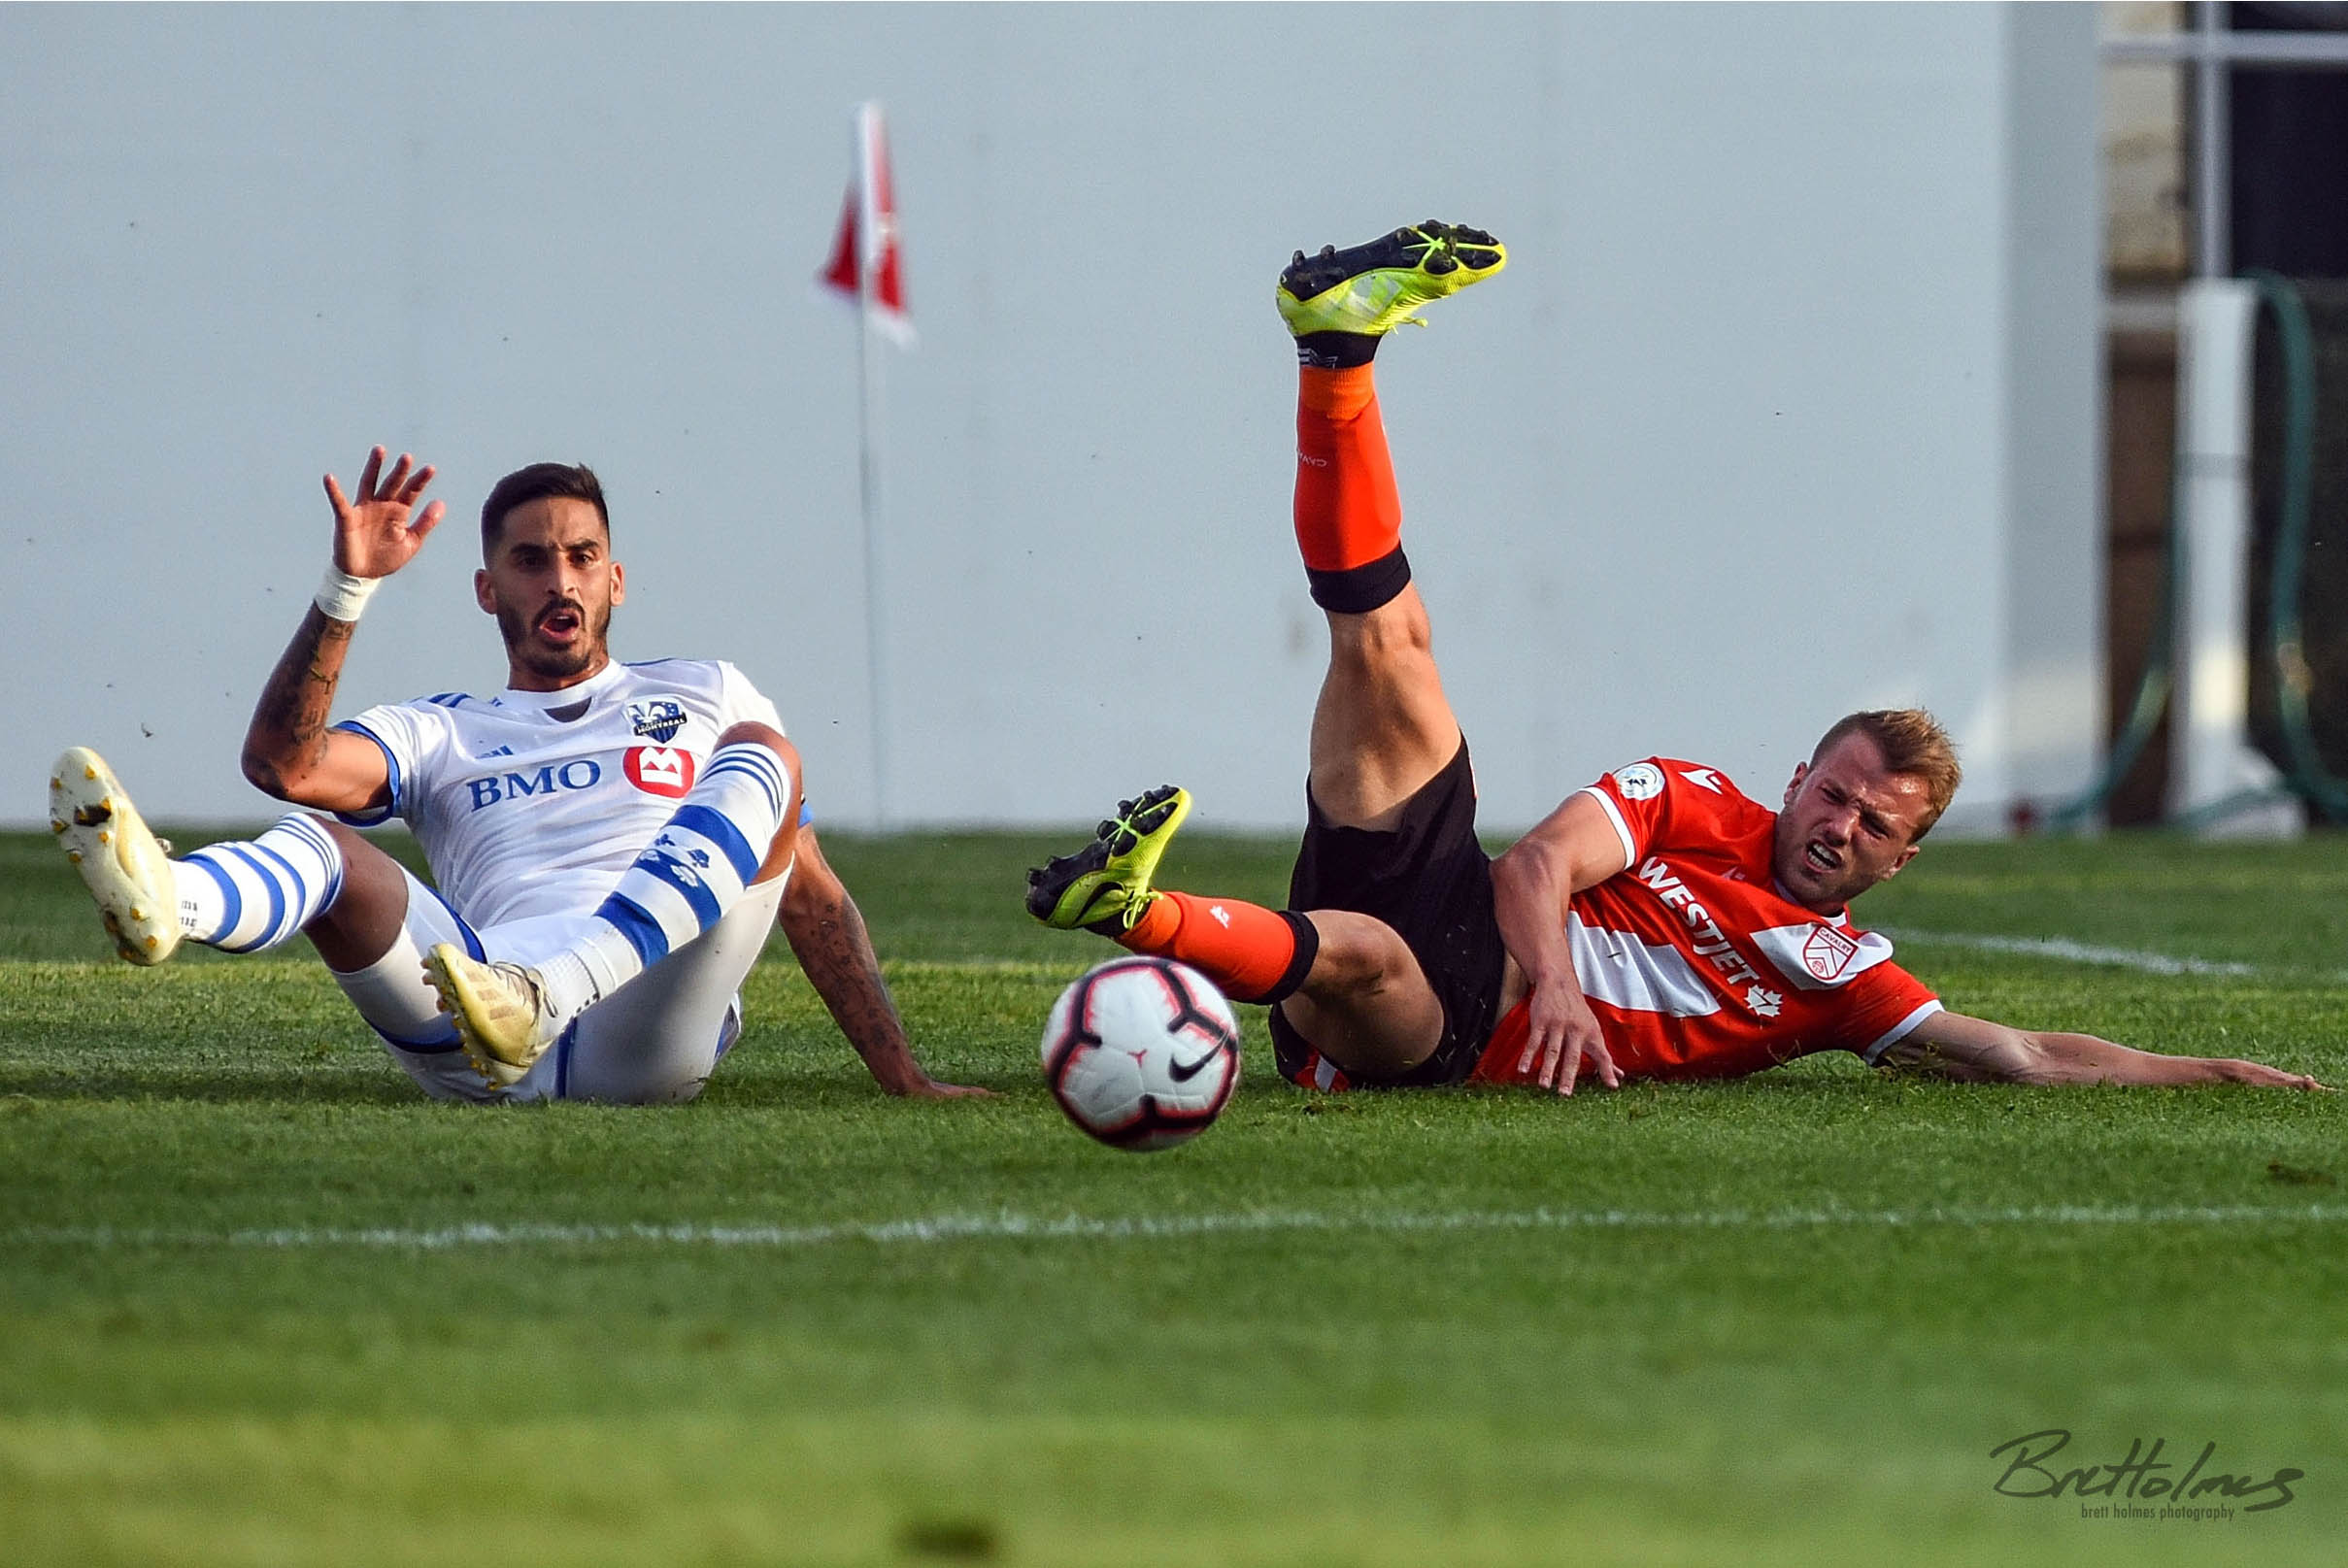 CALGARY, AB - AUGUST 14: Cavalry FC midfielder Julian Büscher (8) is taken down by Montreal Impact defender Jorge Corrales (26) during the first half of the second leg of a Canadian Championship semifinal match between the Montreal Impact and Cavalry FC on August 14, 2019, at ATCO Field at Spruce Meadows in Calgary, AB. (Photo by Brett Holmes/Icon Sportswire)